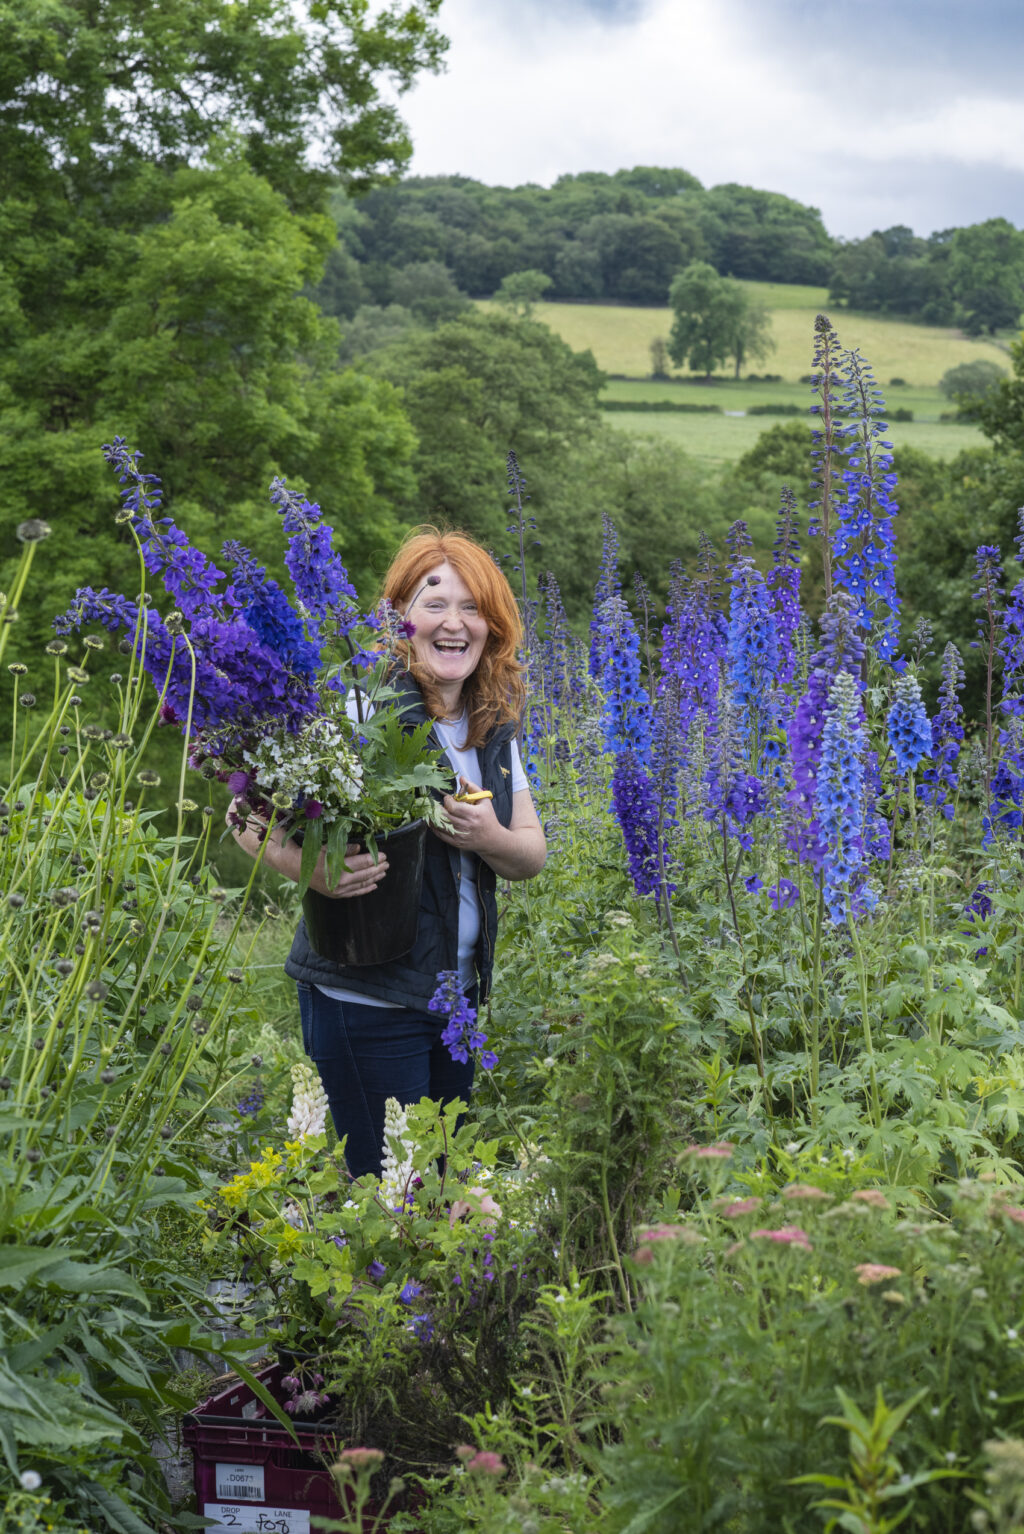 Pam of Quirky flowers stands in her flower field surrounded by tall blue spires of delpiniums in the Staffordshire landscape. She's holding a bucket of cut flowers as she laughs with the photographer. Photo: Nicola Stocken.